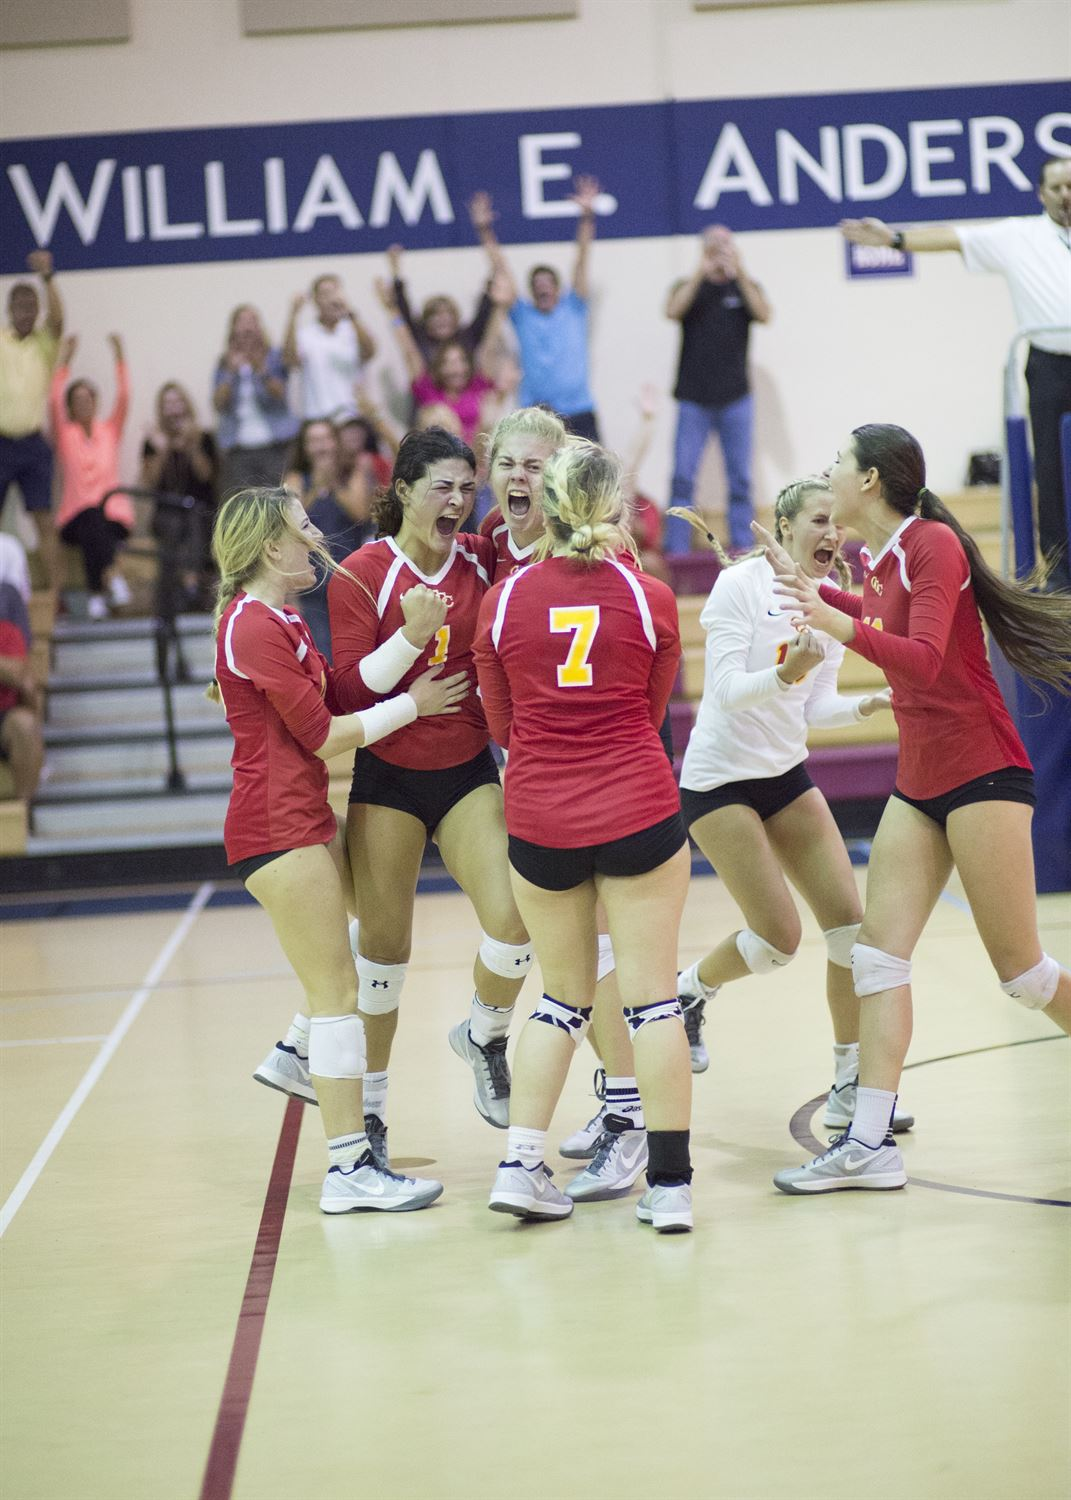 Clearwater Central Catholic High School - Girls' Varsity Volleyball